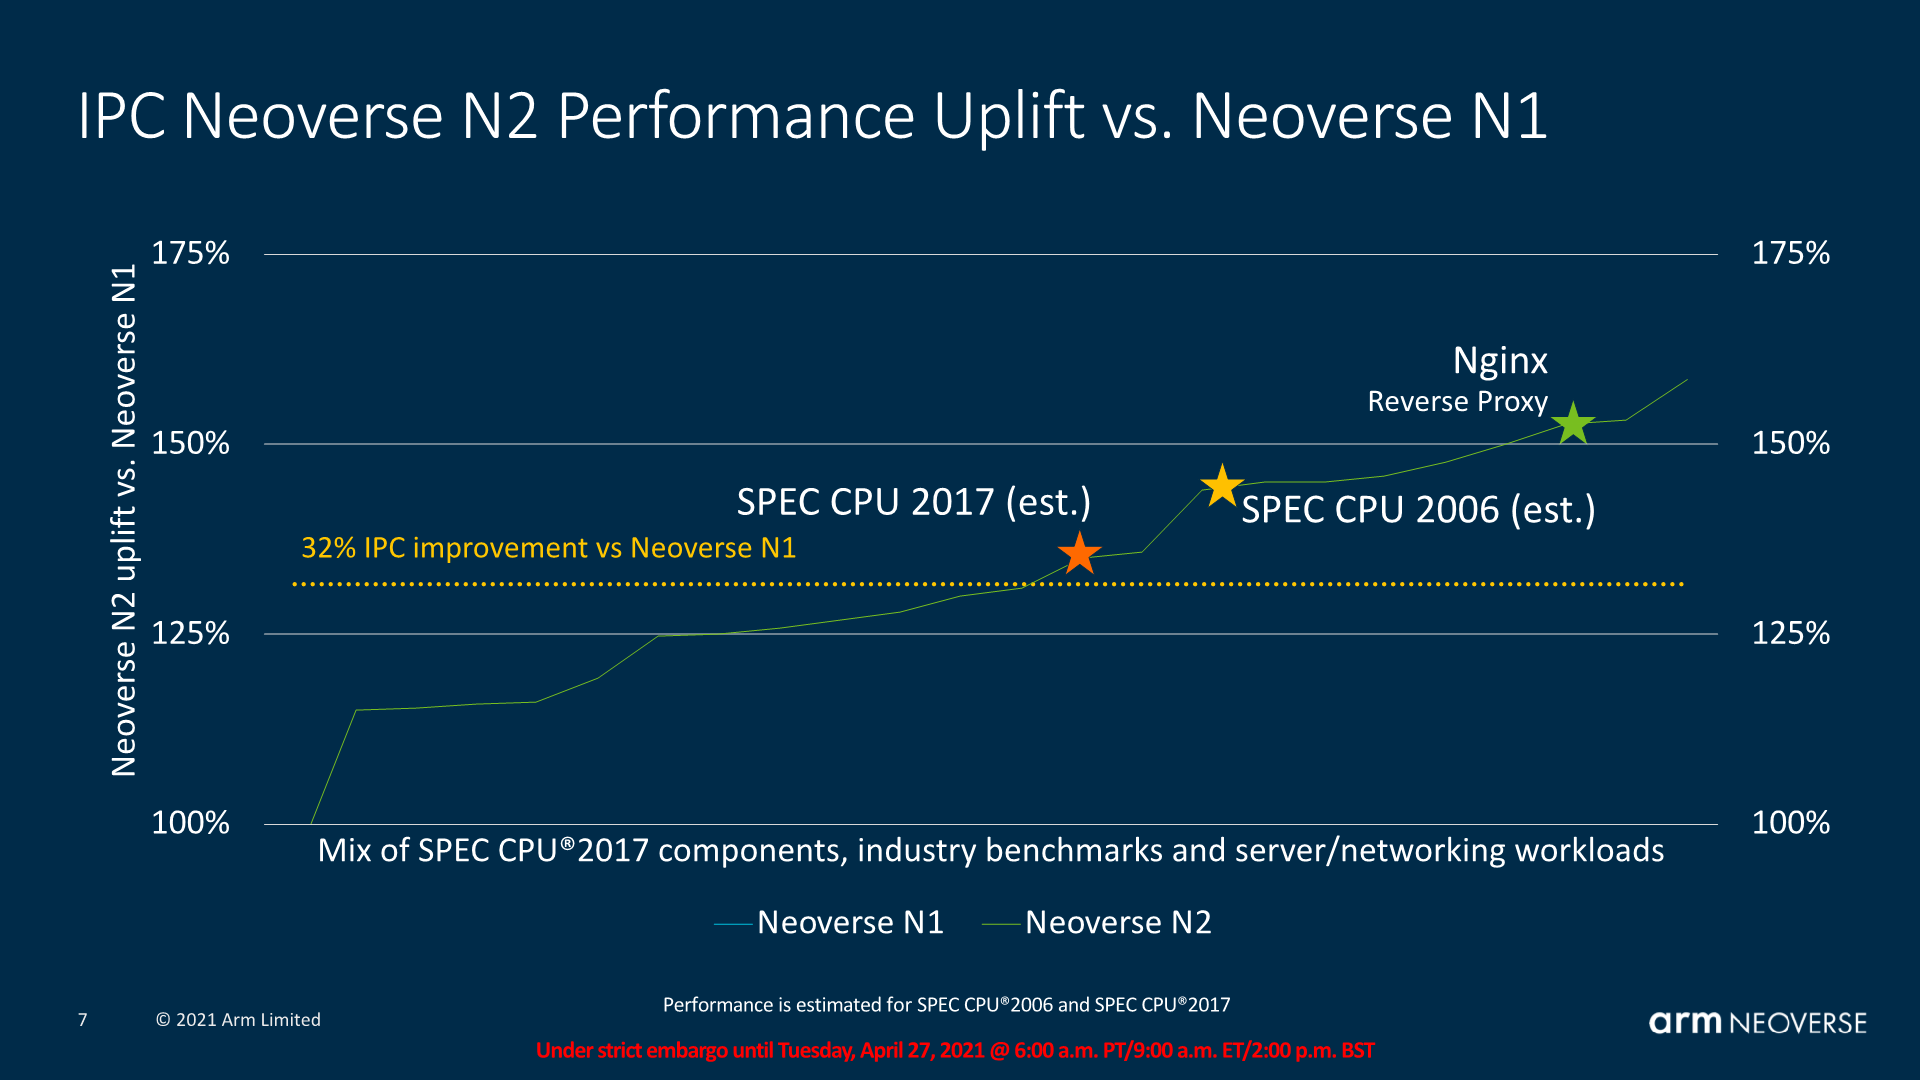 ARM Neoverse N2 09